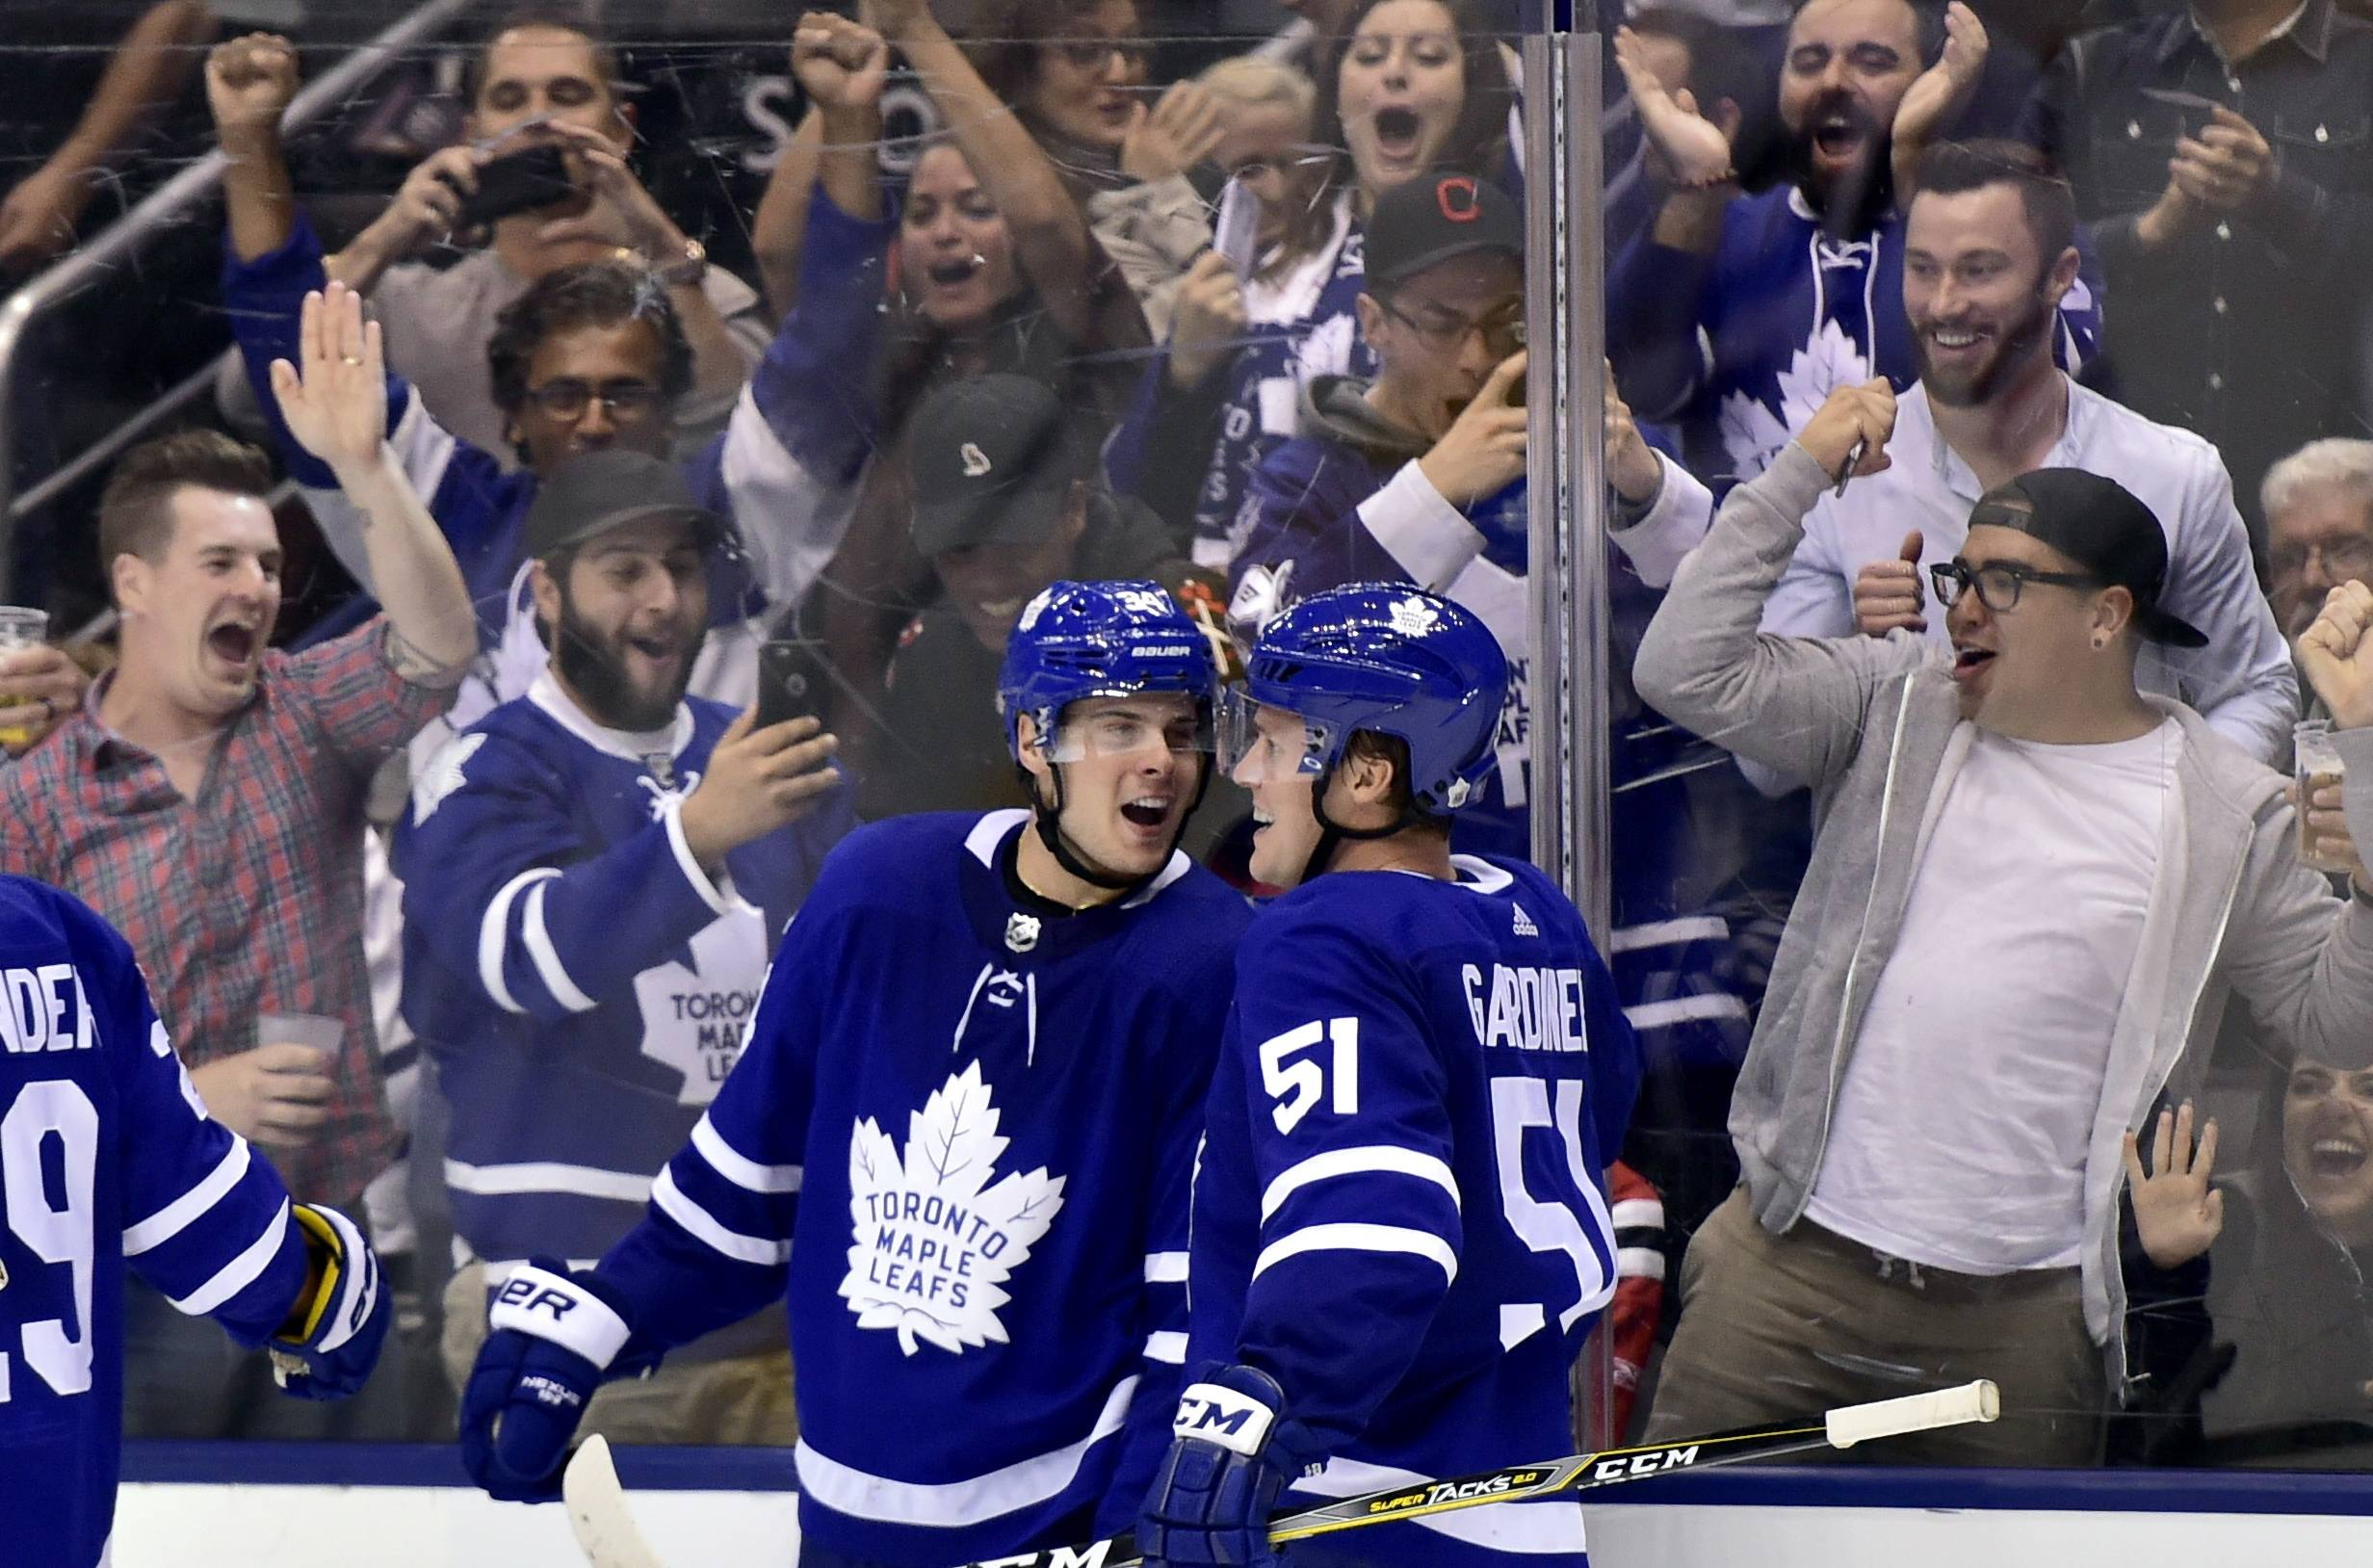 Toronto Maple Leafs center Auston Matthews (34) celebrates his game-winning goal with teammate Jake Gardiner (51) during overtime of an NHL hockey game against the Chicago Blackhawks in Toronto on Monday, Oct. 9, 2017.